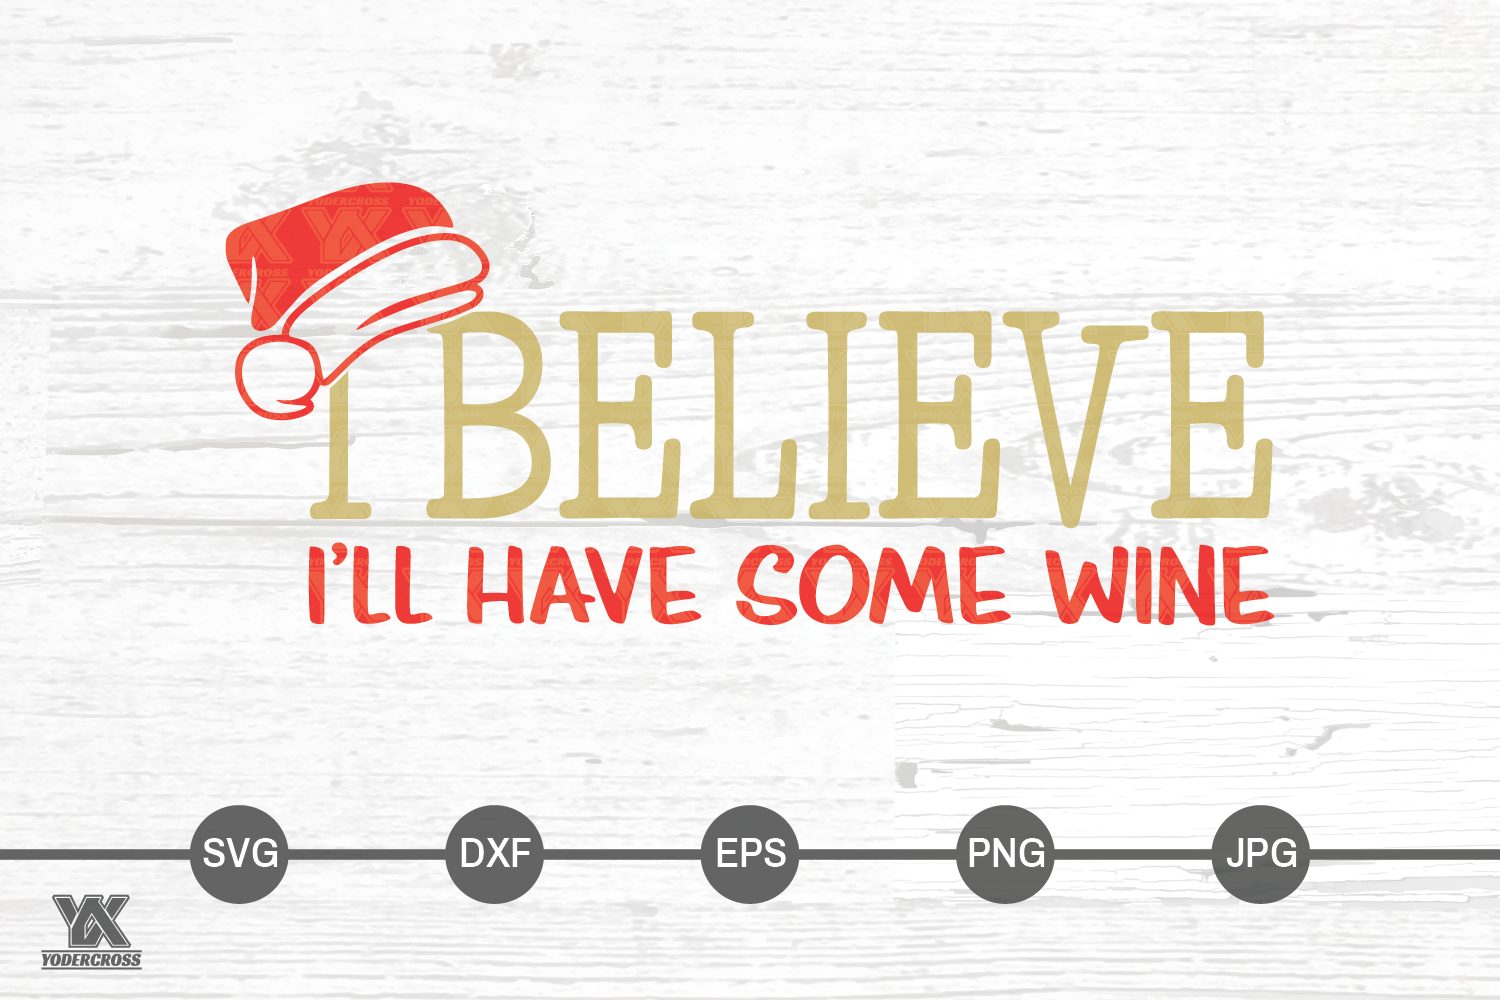 I Believe I'll Have Some Wine SVG example image 6